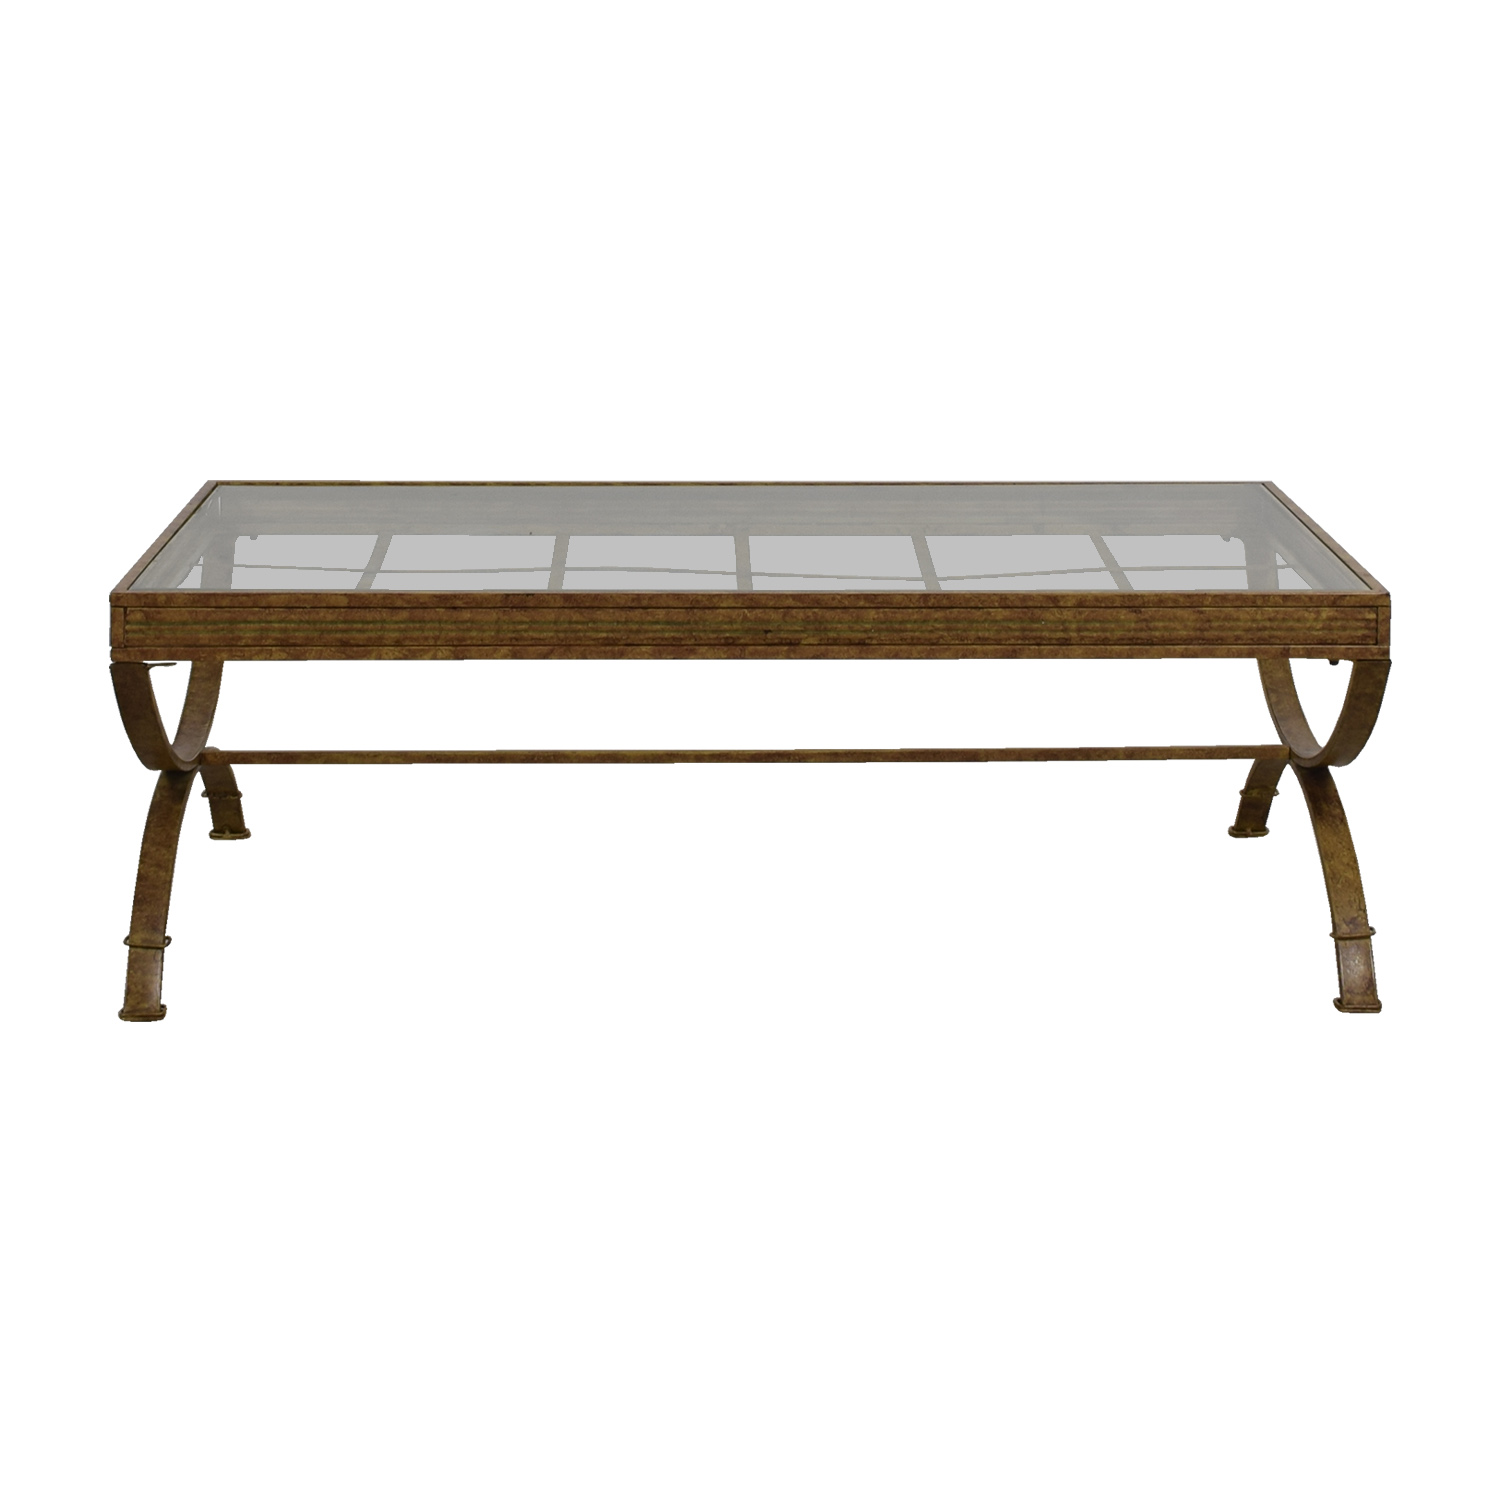 buy Bobs Furniture Rustic Glass Coffee Table Bobs Furniture Coffee Tables